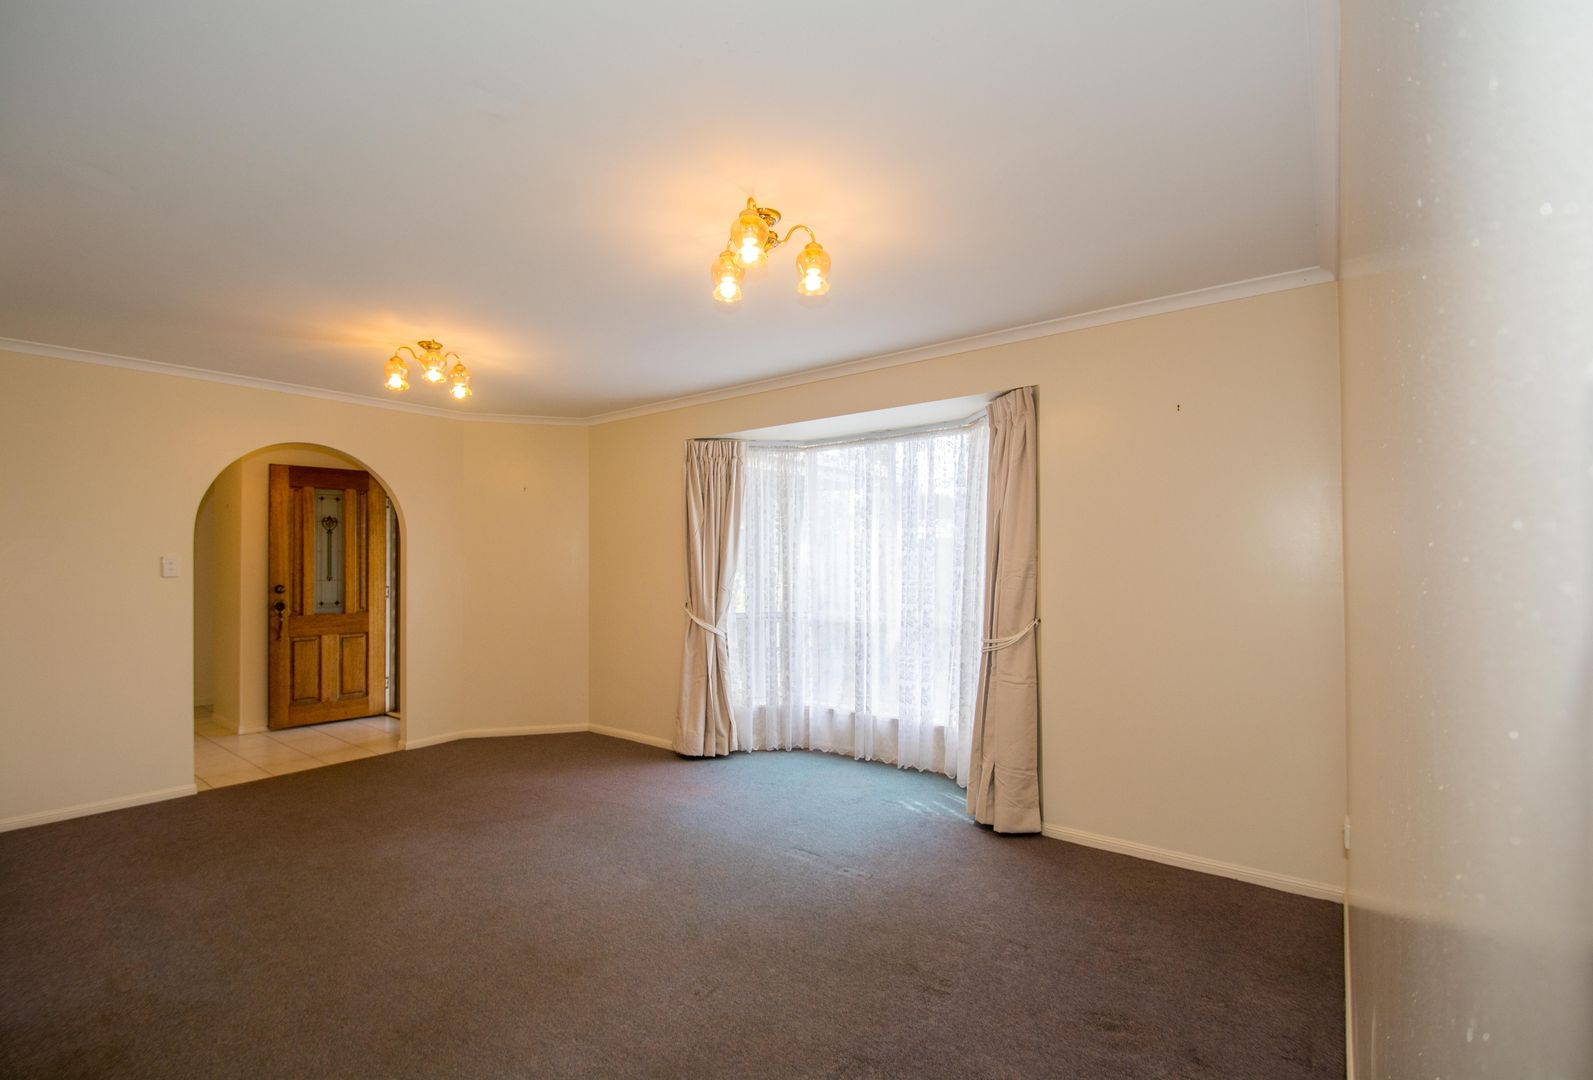 355 Woongarra Scenic Drive, Innes Park QLD 4670, Image 1